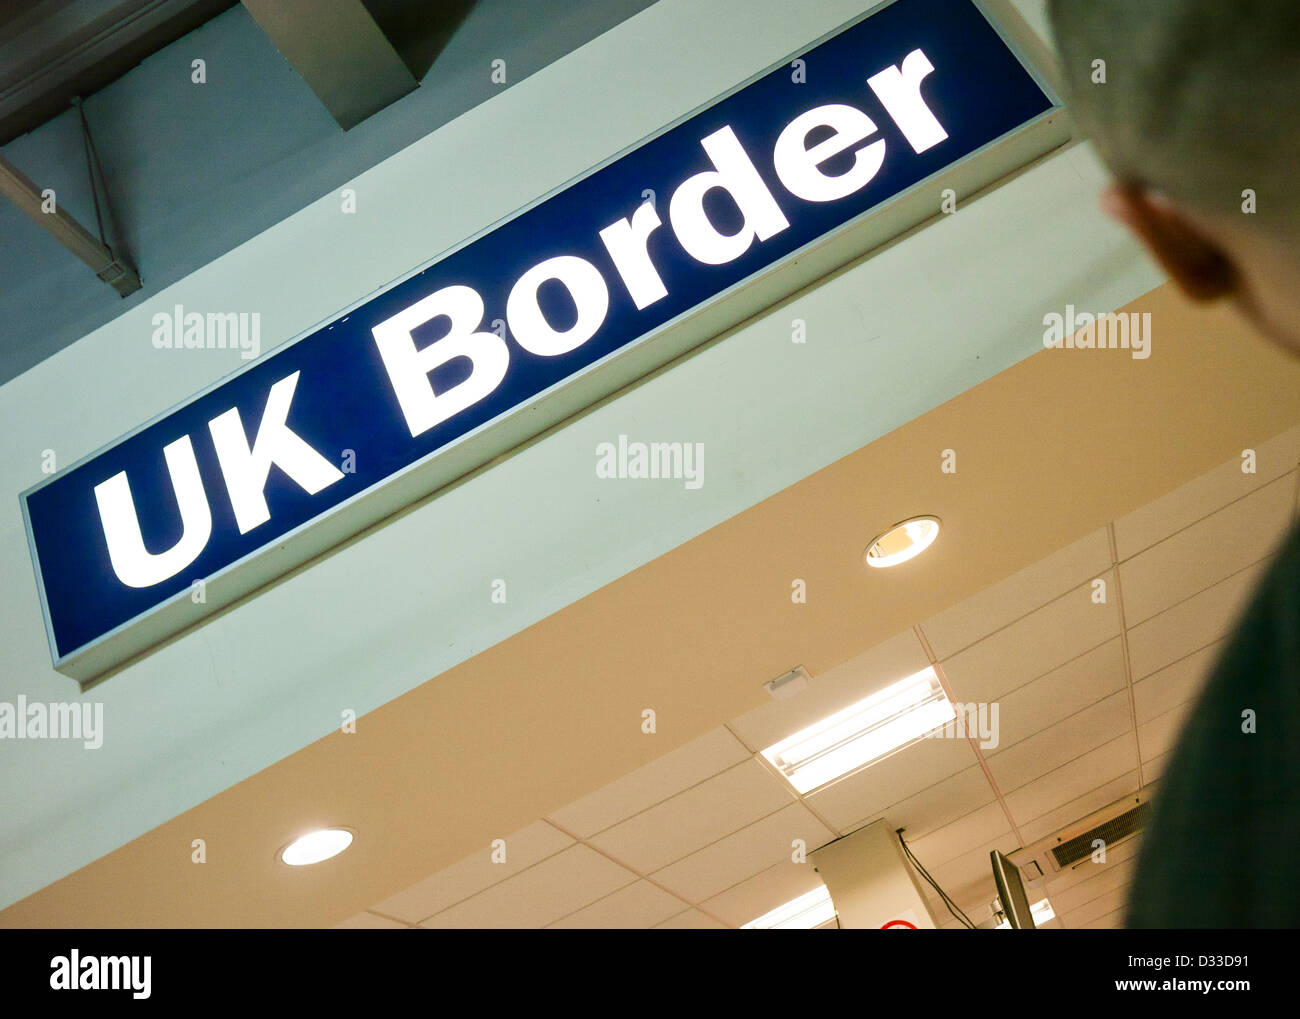 UK Border Agency control sign at an airport in Britain - Stock Image